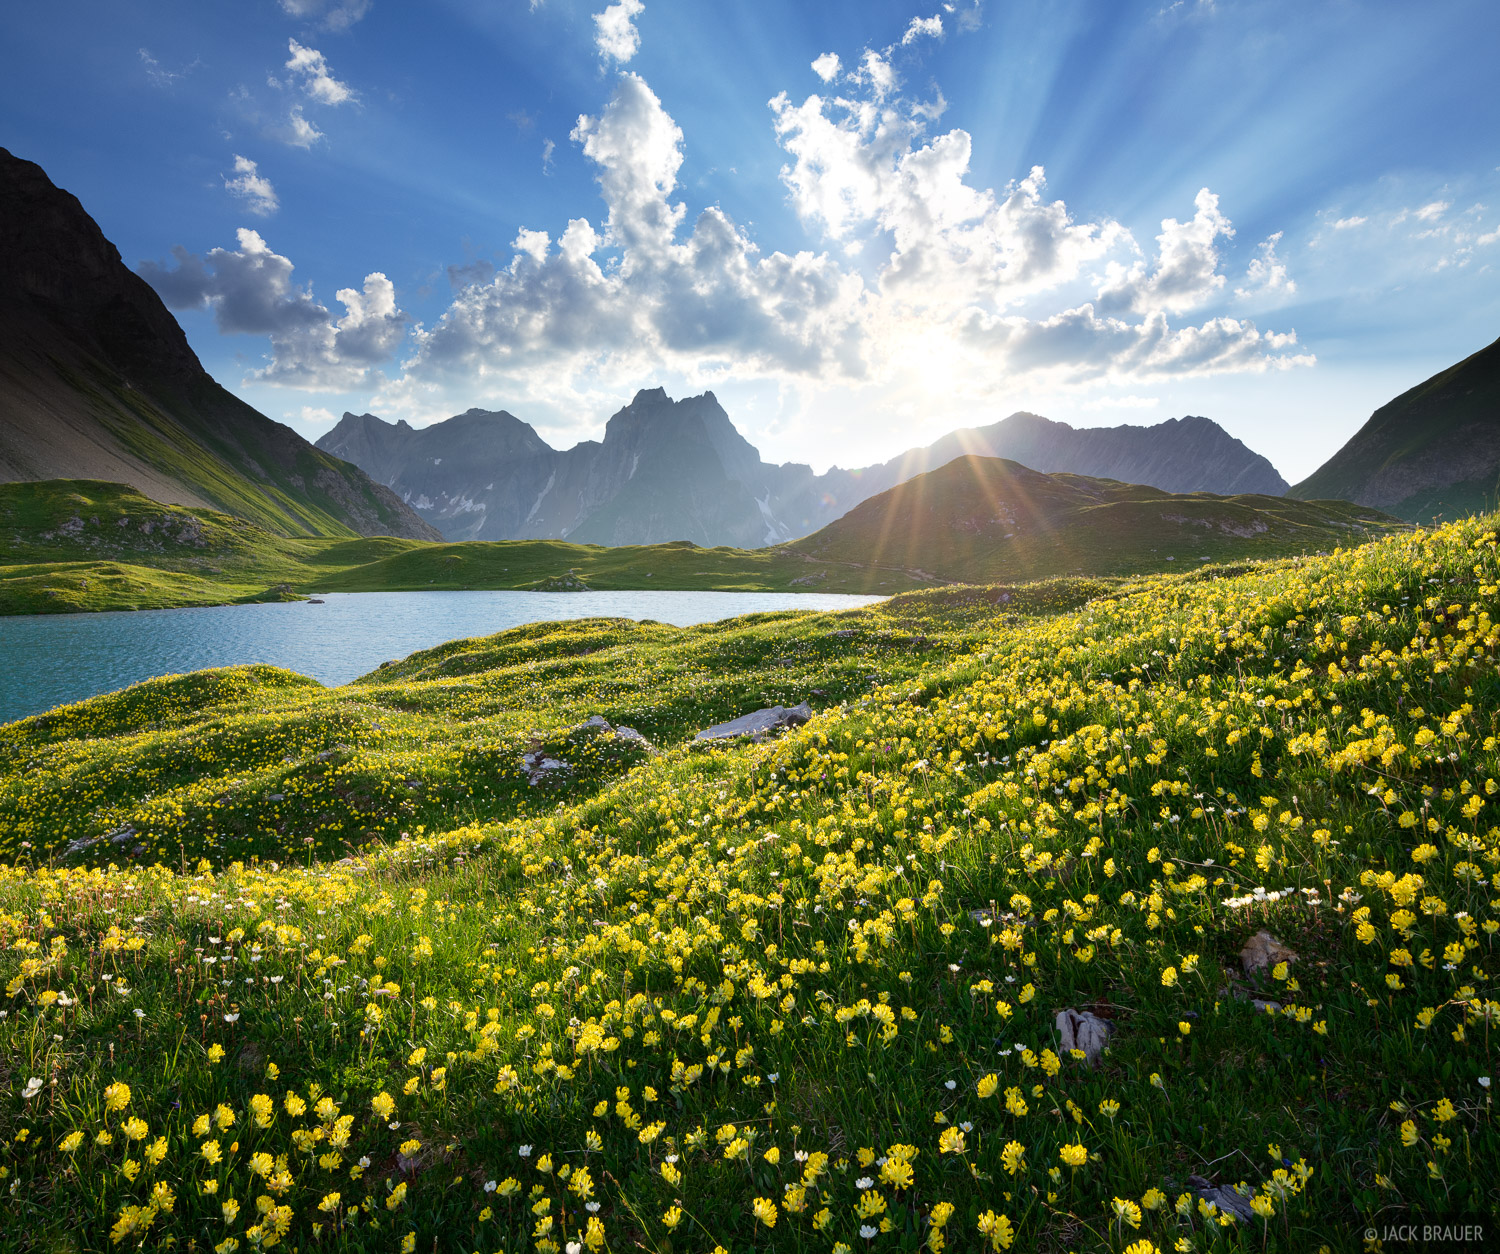 Lechtal Alps, Austria, wildflowers, Memminger H, photo